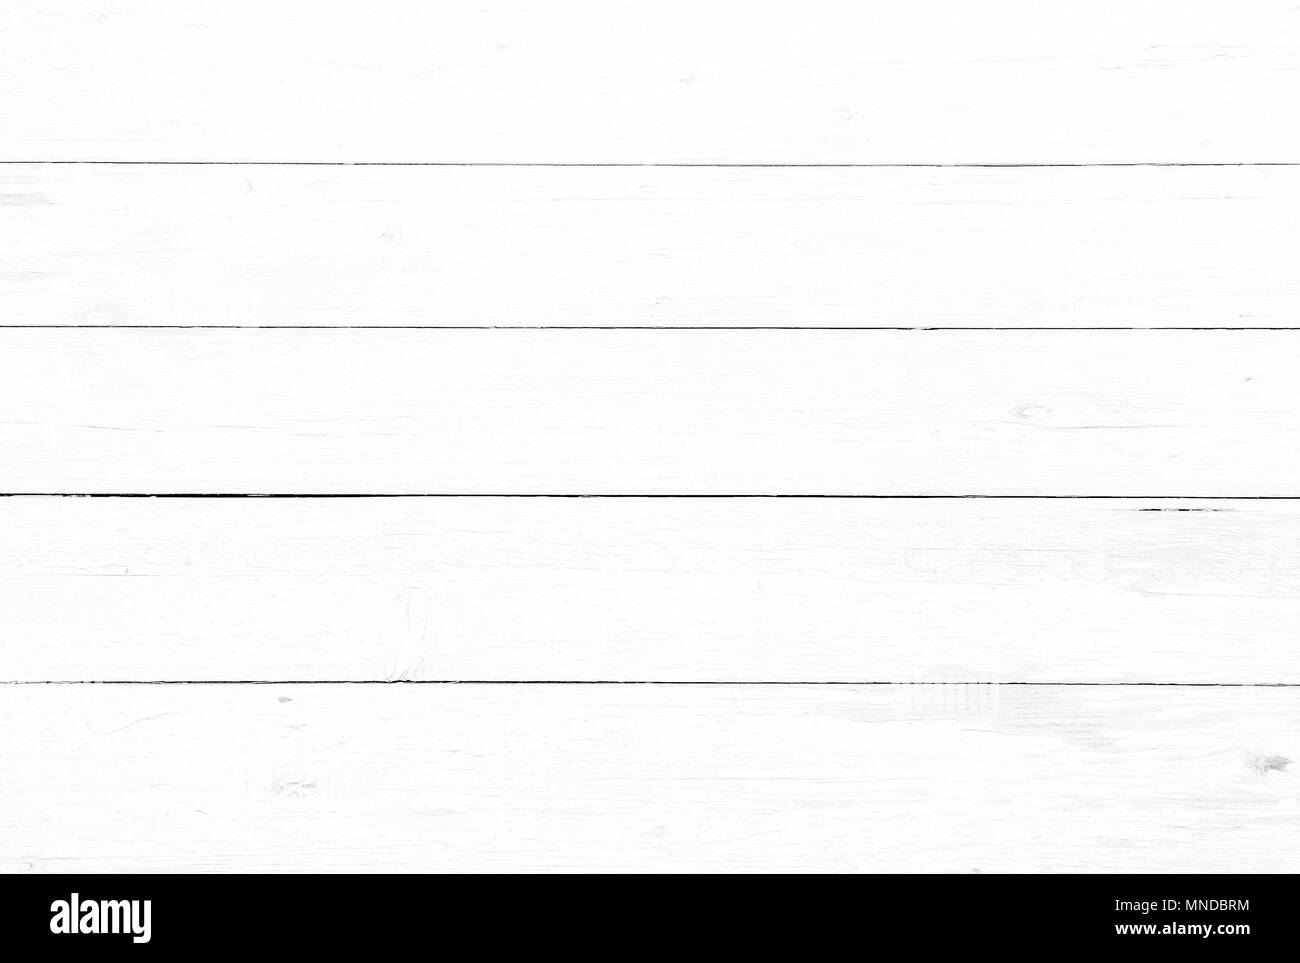 wood texture background, light oak of weathered distressed rustic wooden with faded varnish paint showing woodgrain texture. hardwood white planks pat - Stock Image